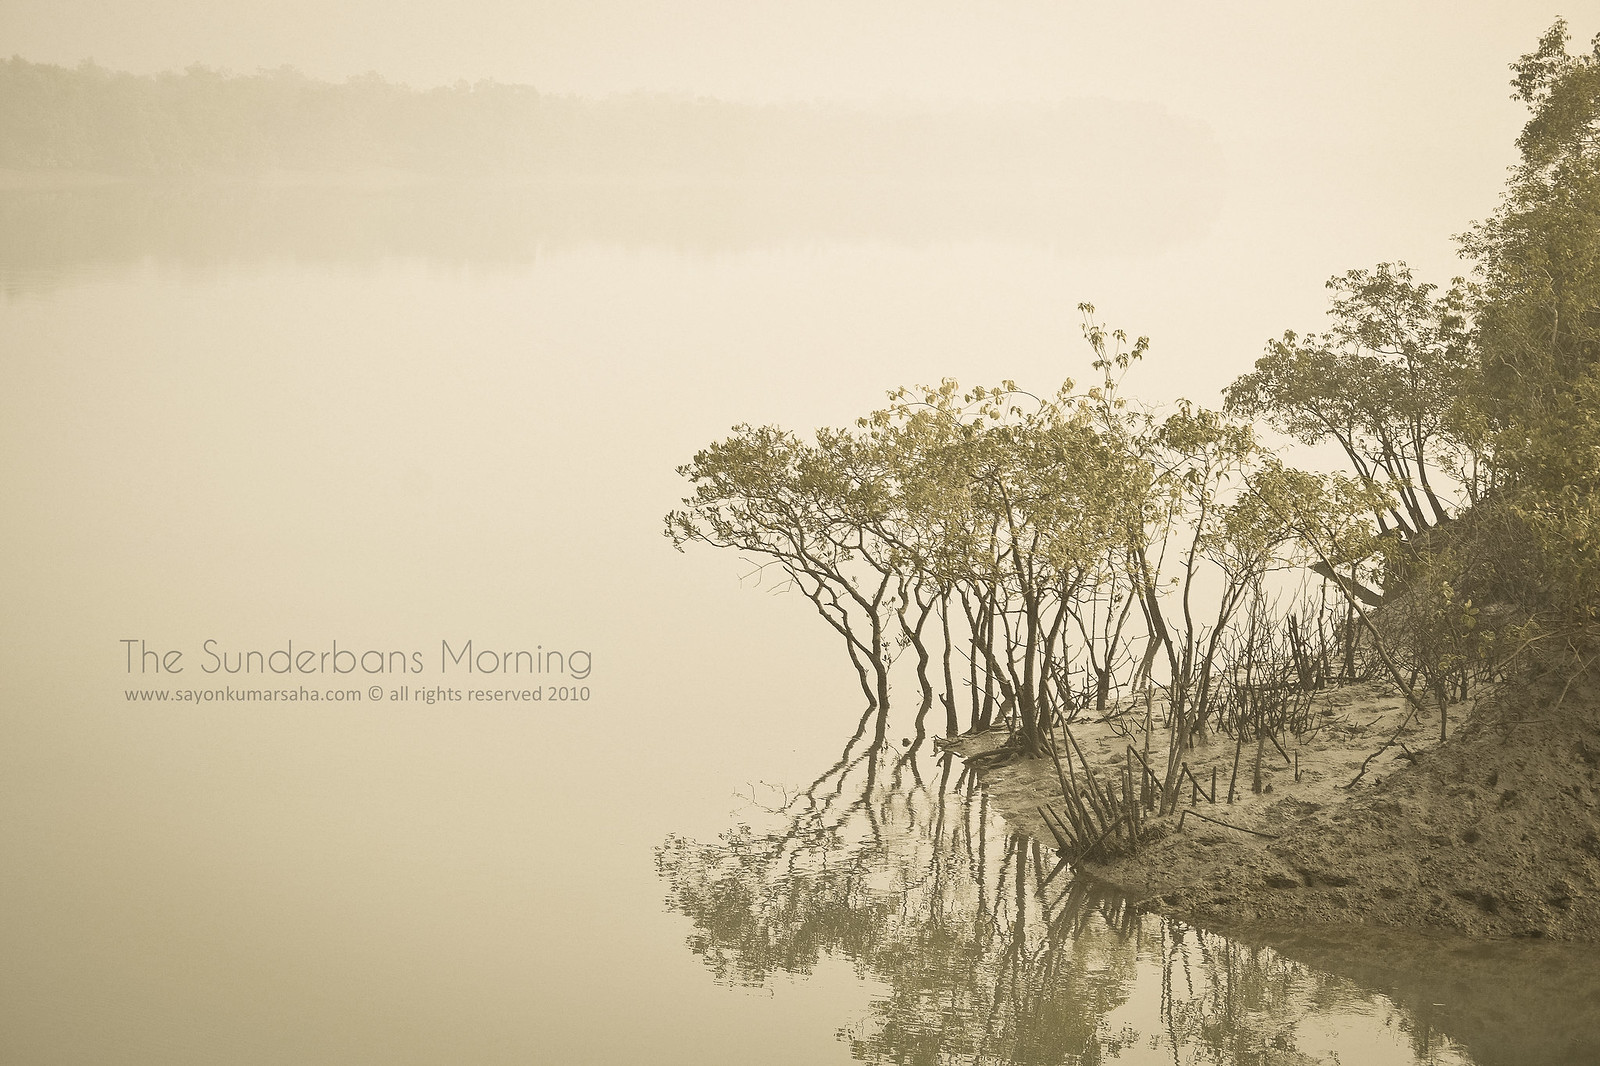 The Sunderbans Morning